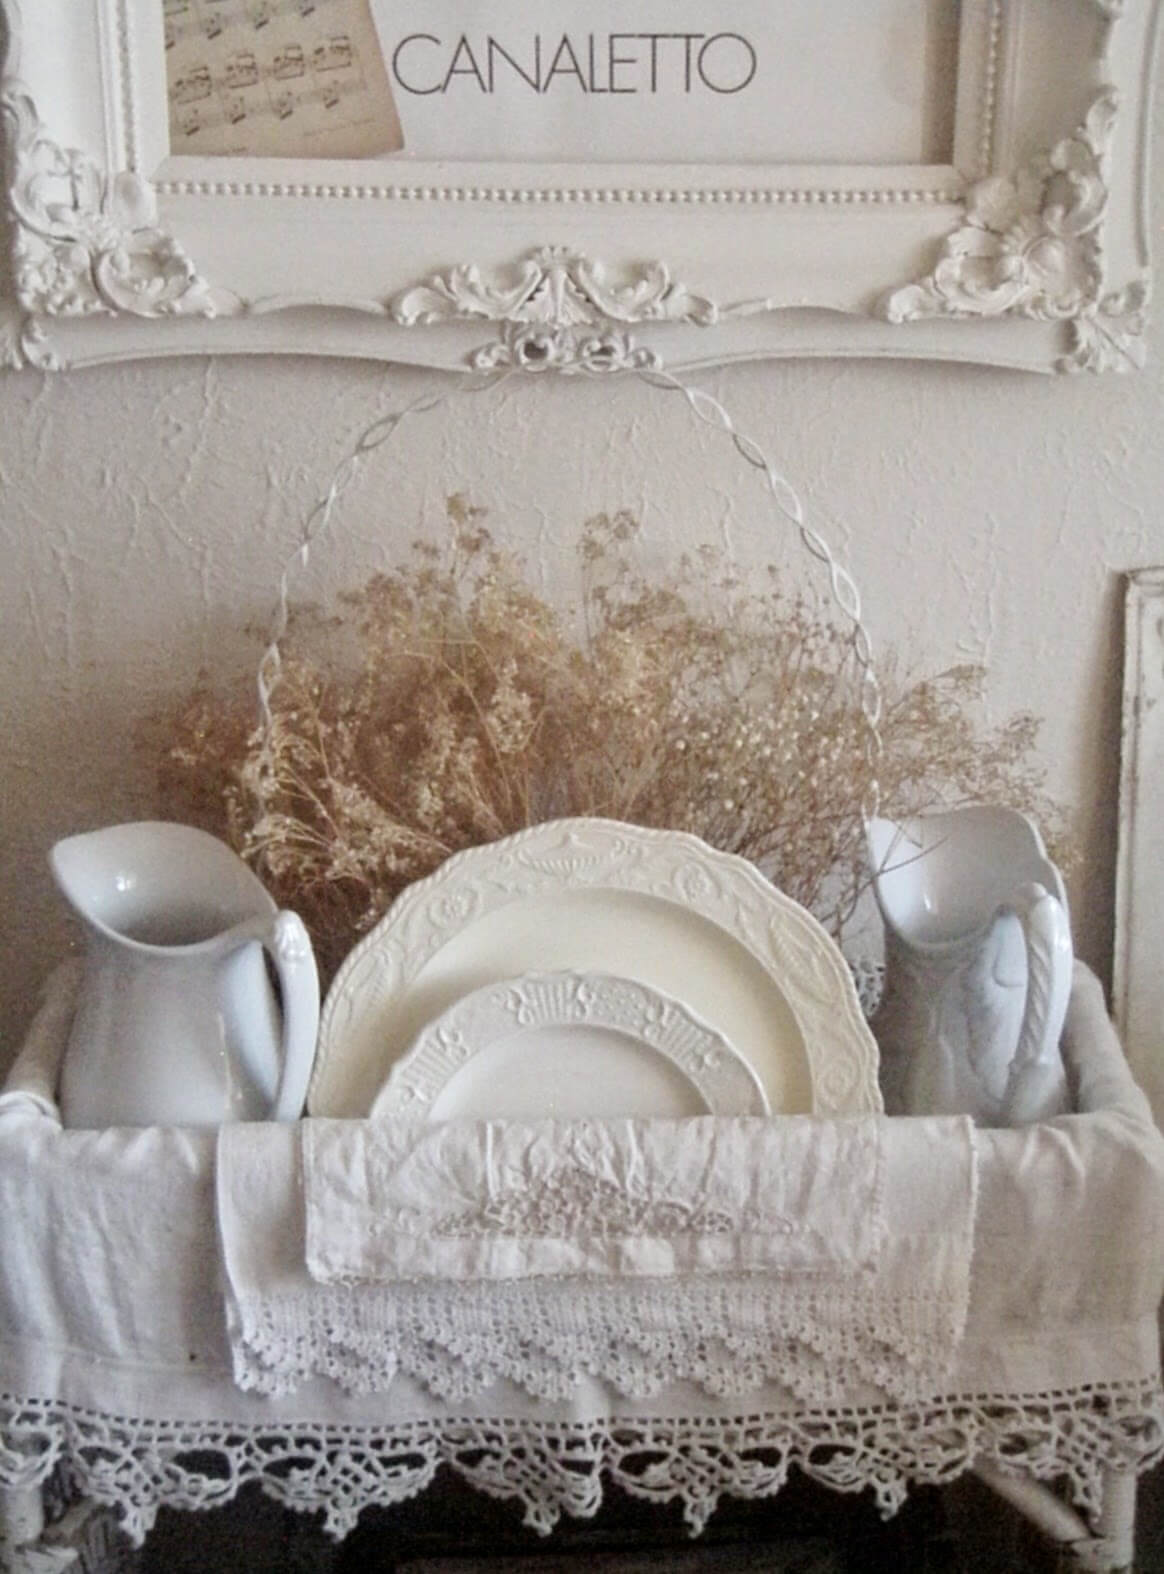 Doily Trimmed White Linens with Dishes